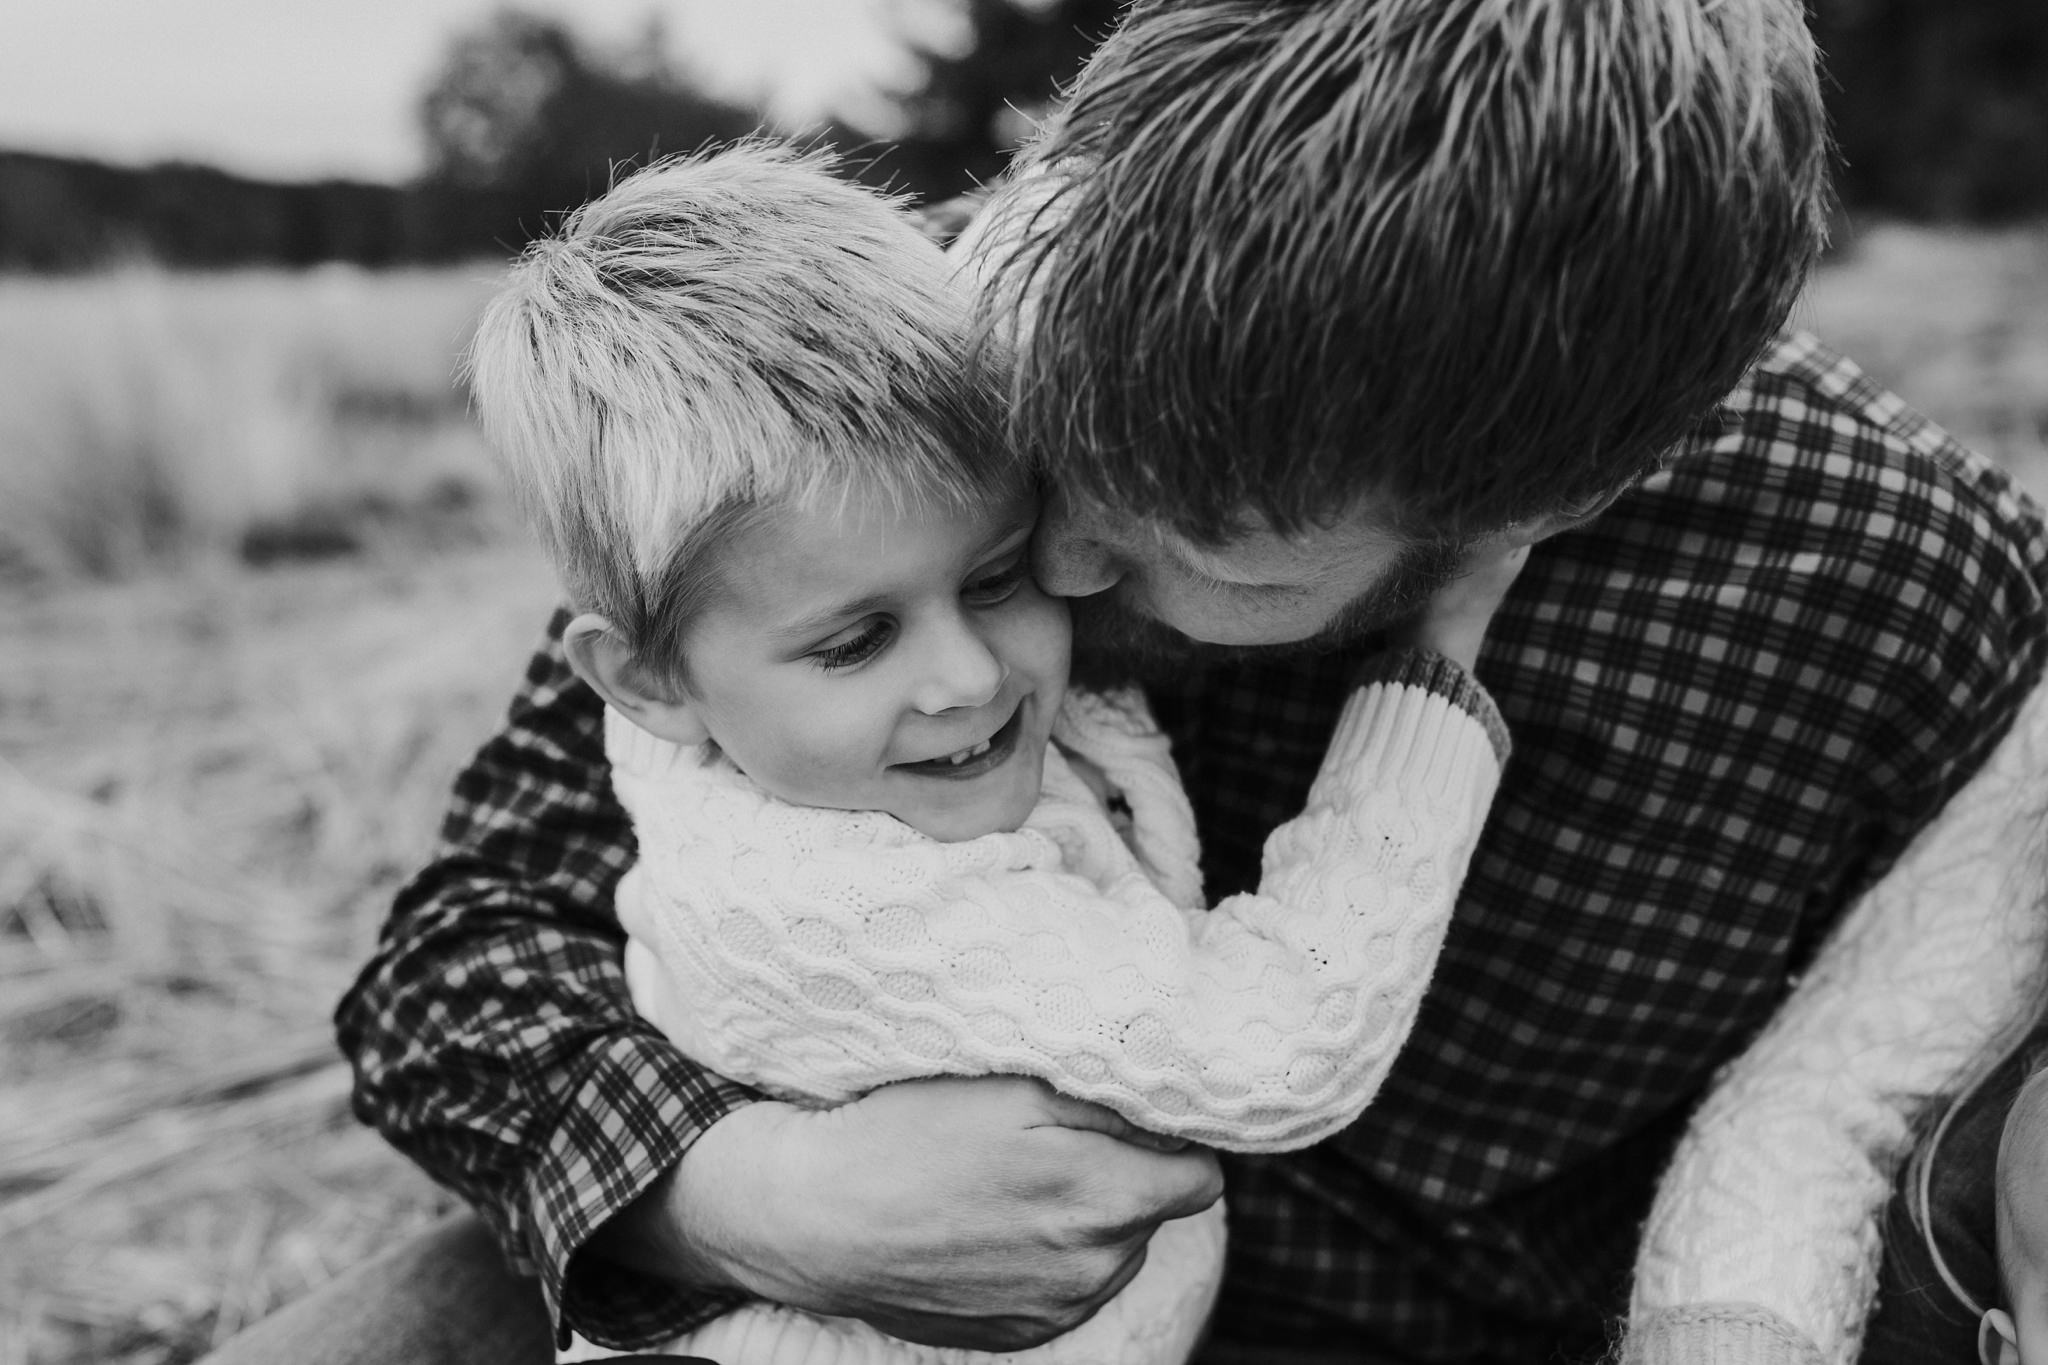 kara chappell whidbey island family photography dad snuggles son on blanket at park